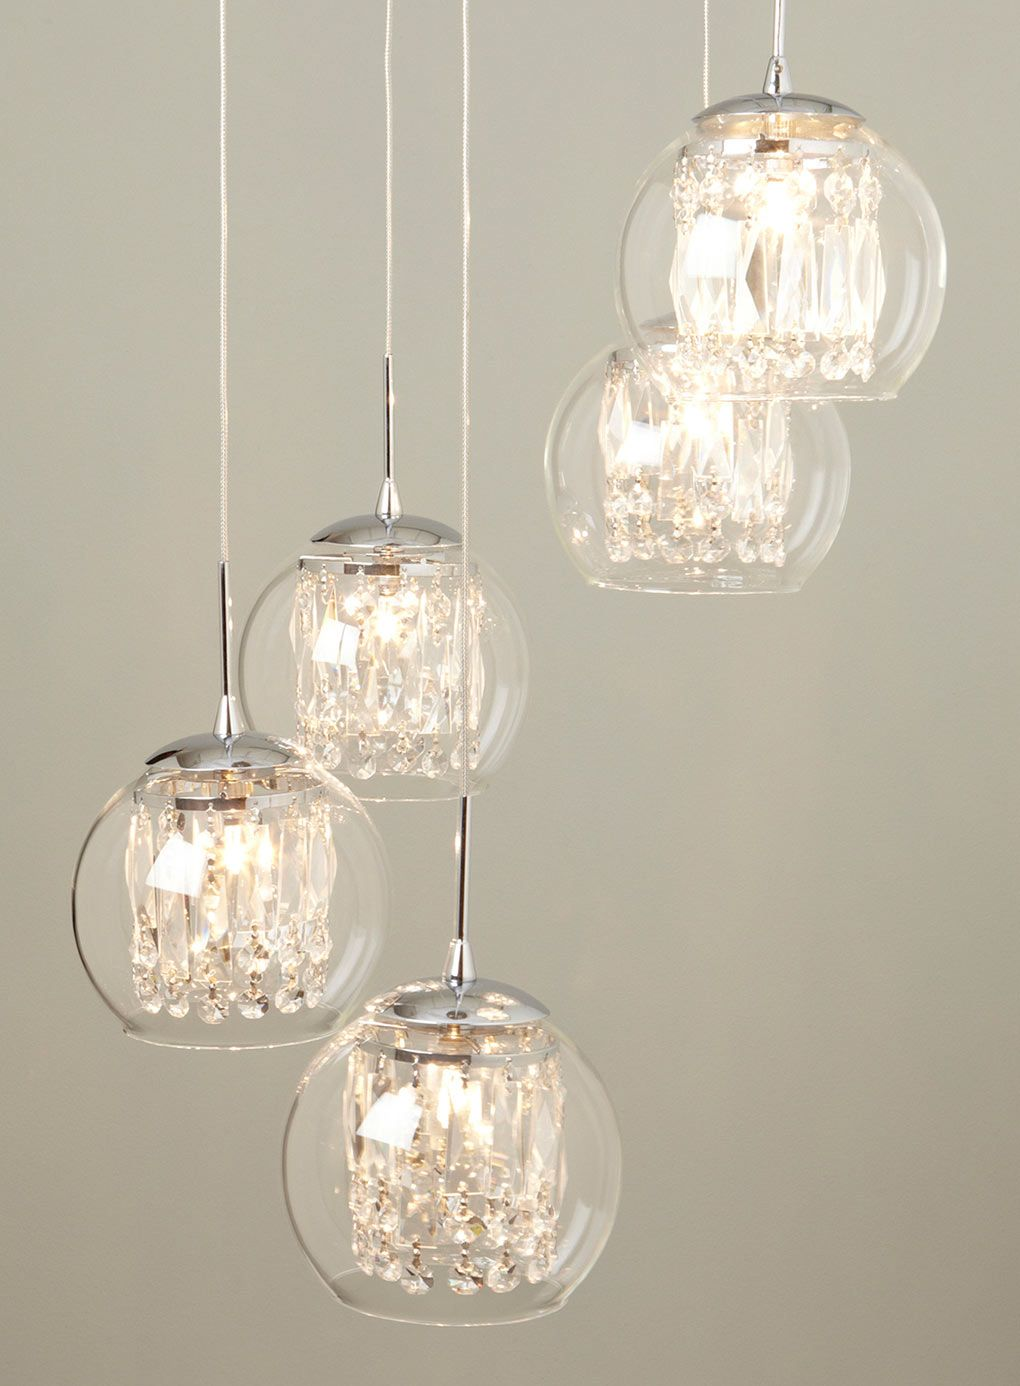 Glass crystal spiral pendant chandelier lighting for the home bhs lounge pinterest - Ceiling lights and chandeliers ...